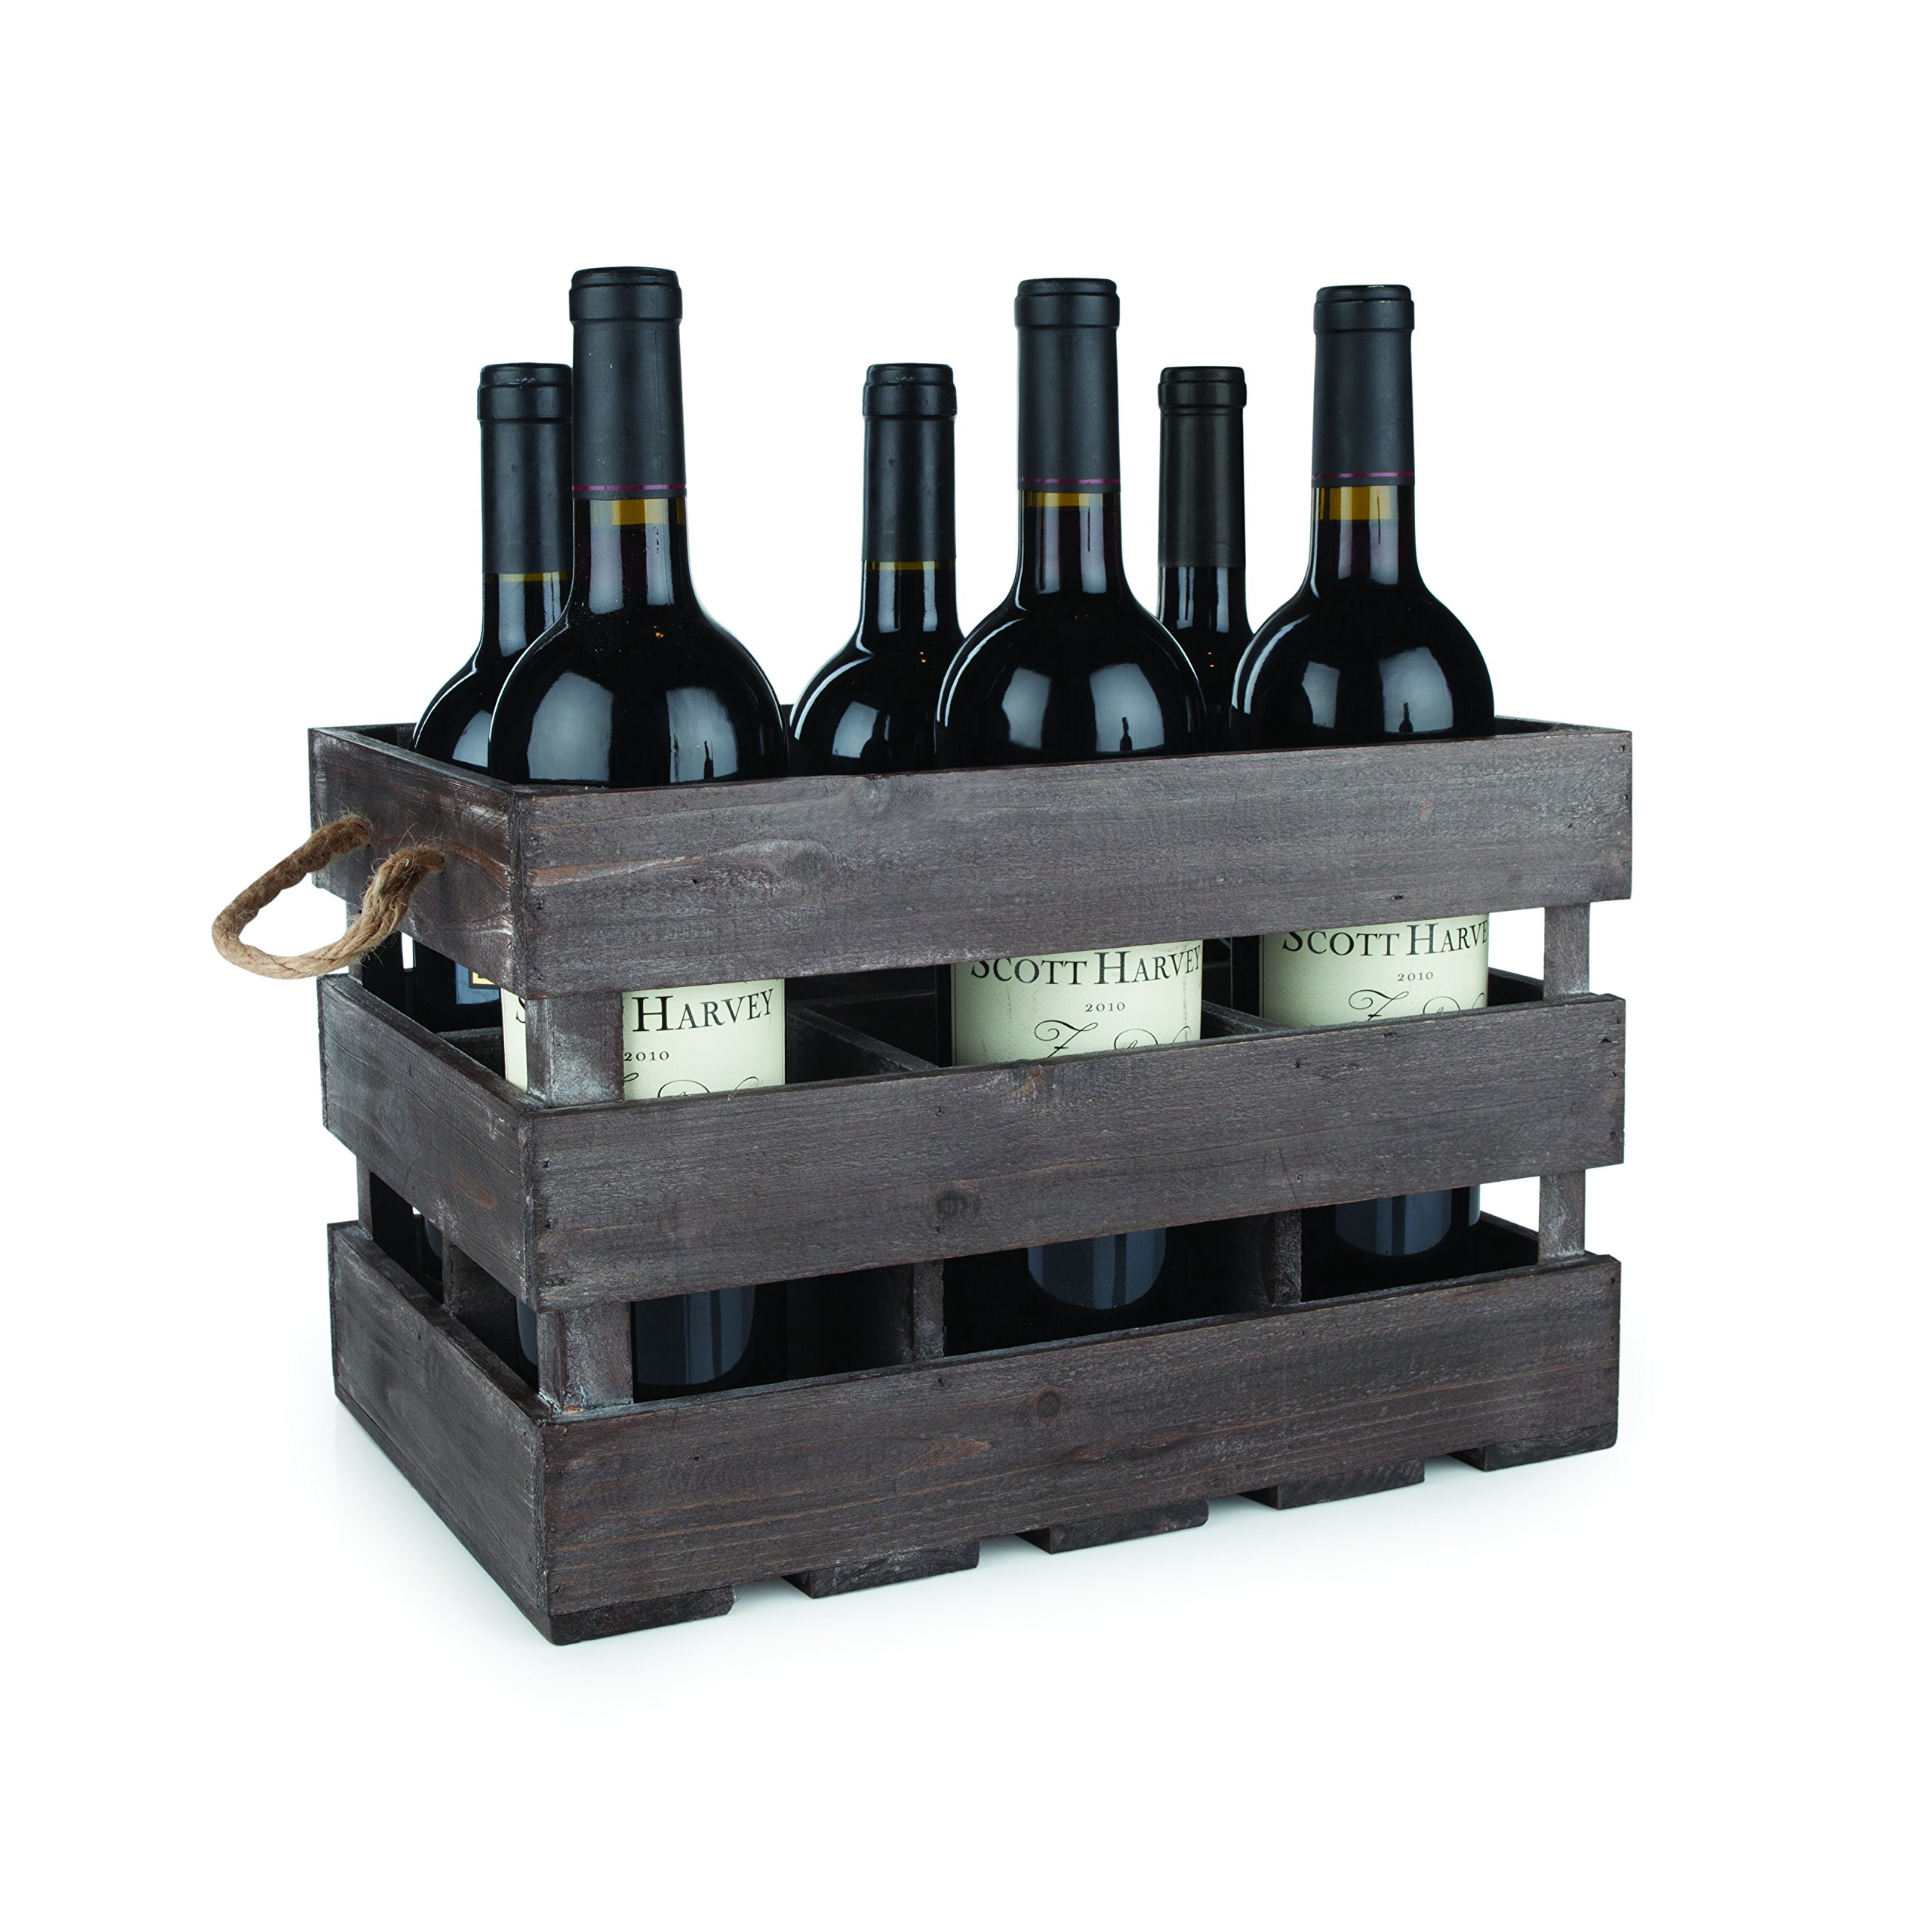 Twine 4281 Rustic Farmhouse Wooden 6 Bottle Crate, 8.75'' Multi Color